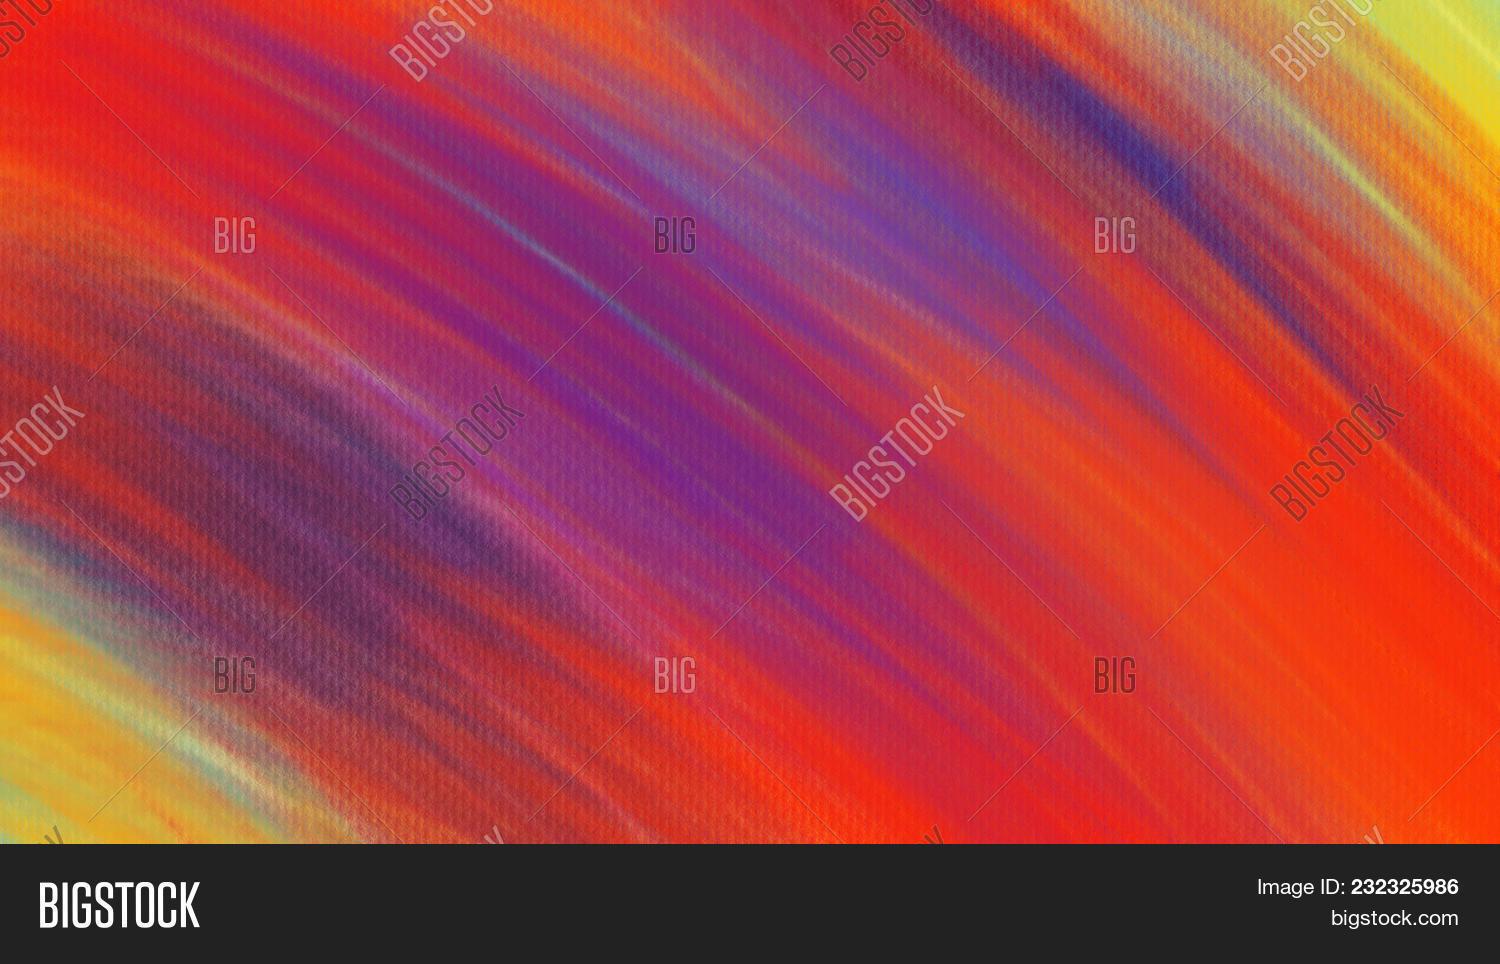 Colorful Abstract Oil Painting On Canvas Background Wallpaper Art Design Color Texture For Cover 232325986 Image Stock Photo